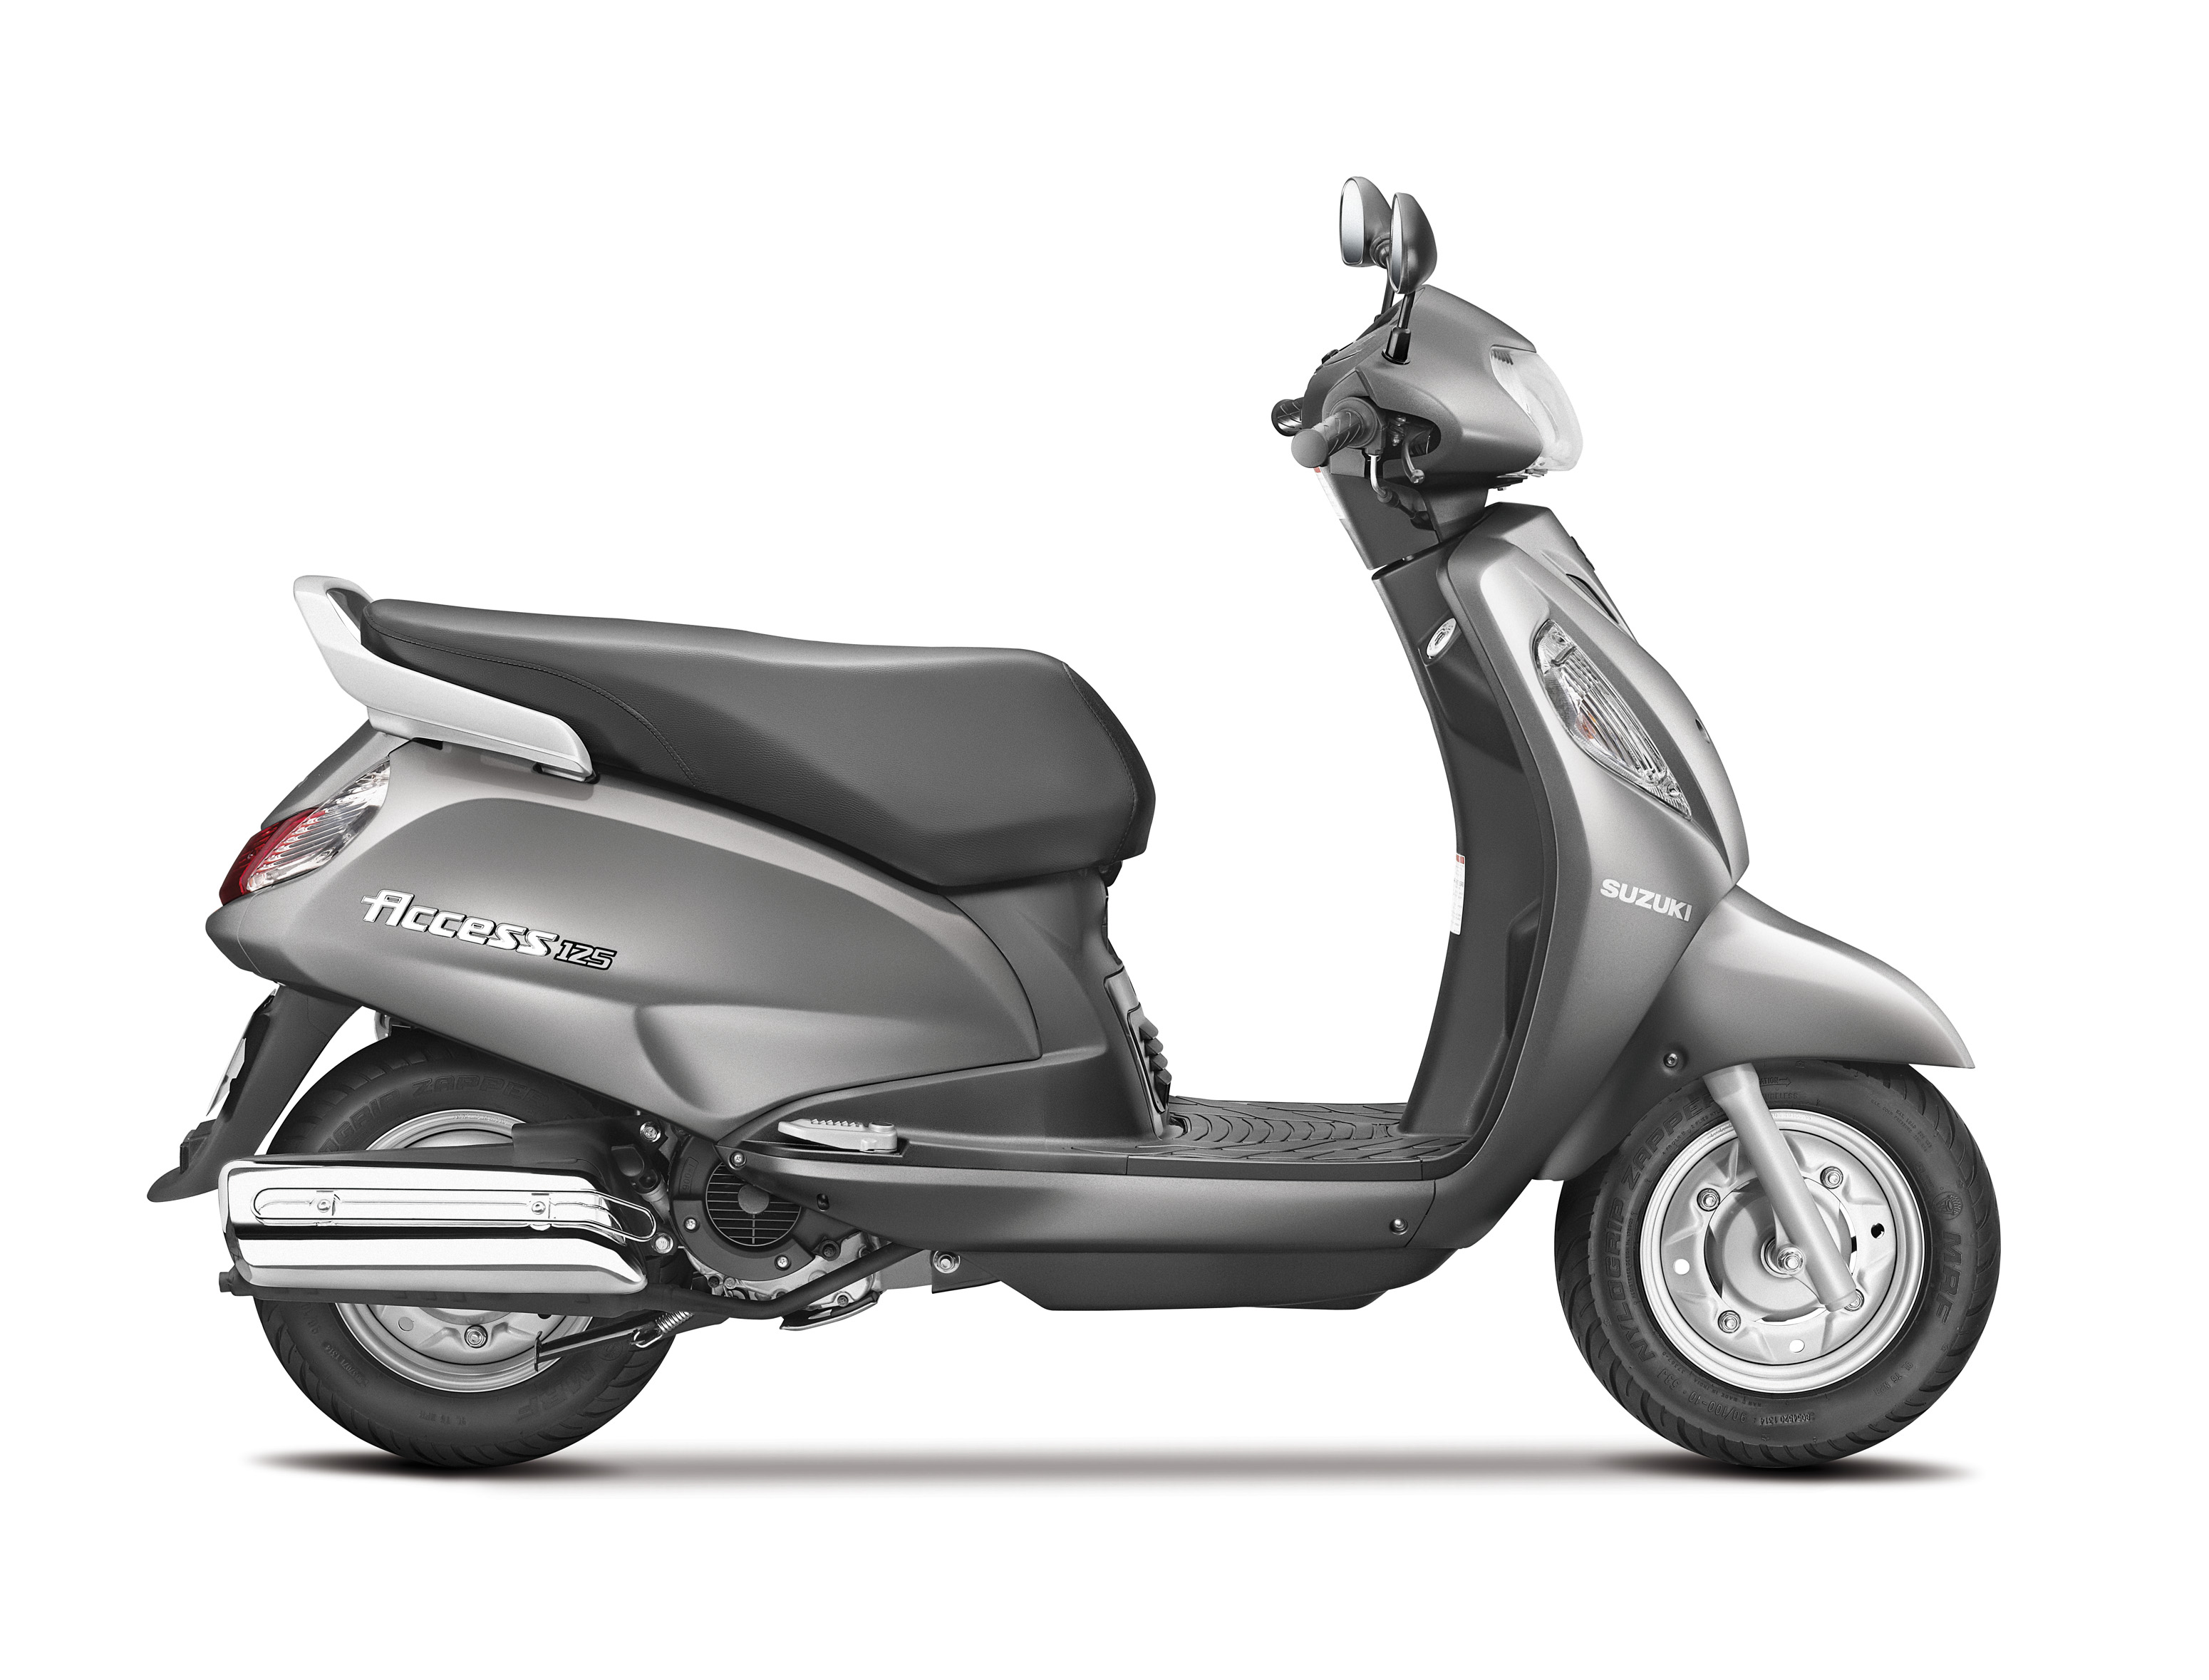 Suzuki Access refreshed, available for Rs. 53,223